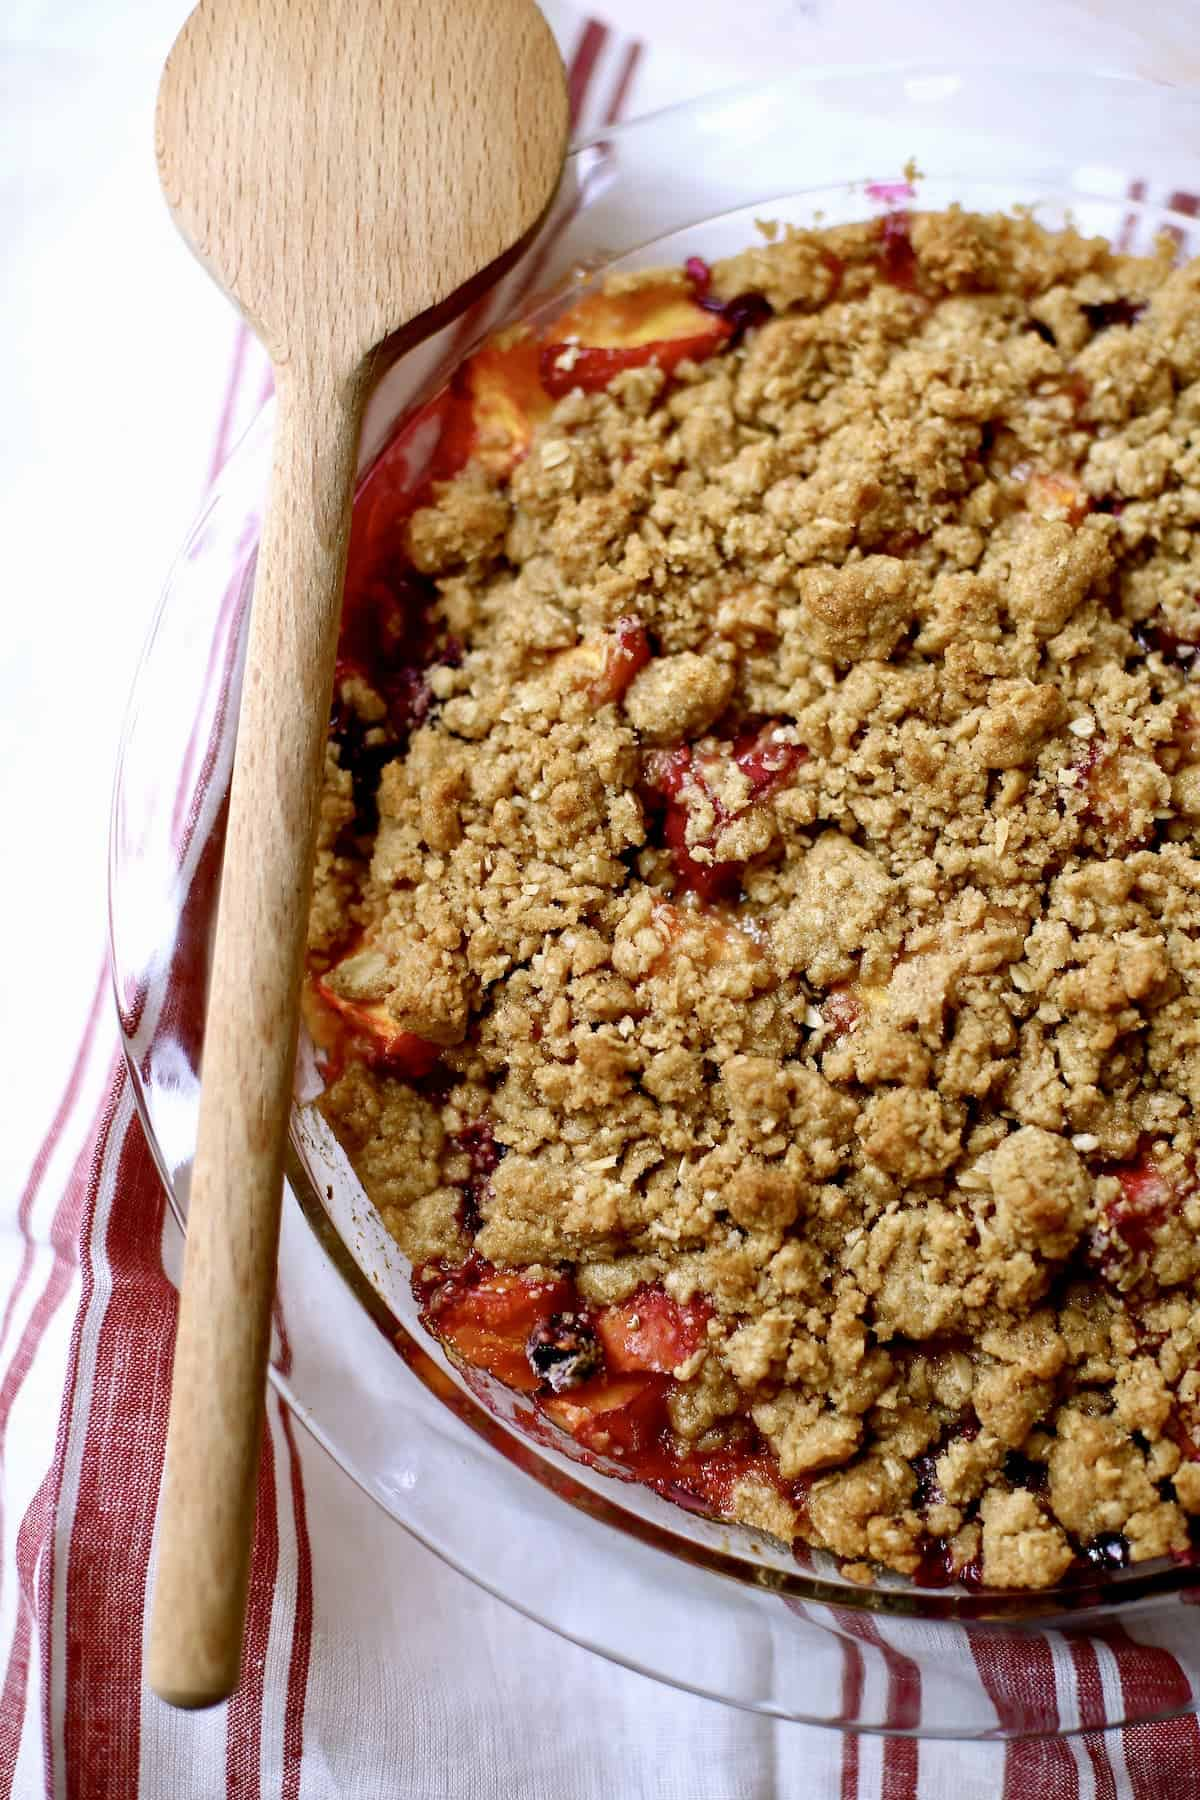 A baking with a baked fruit crisp.